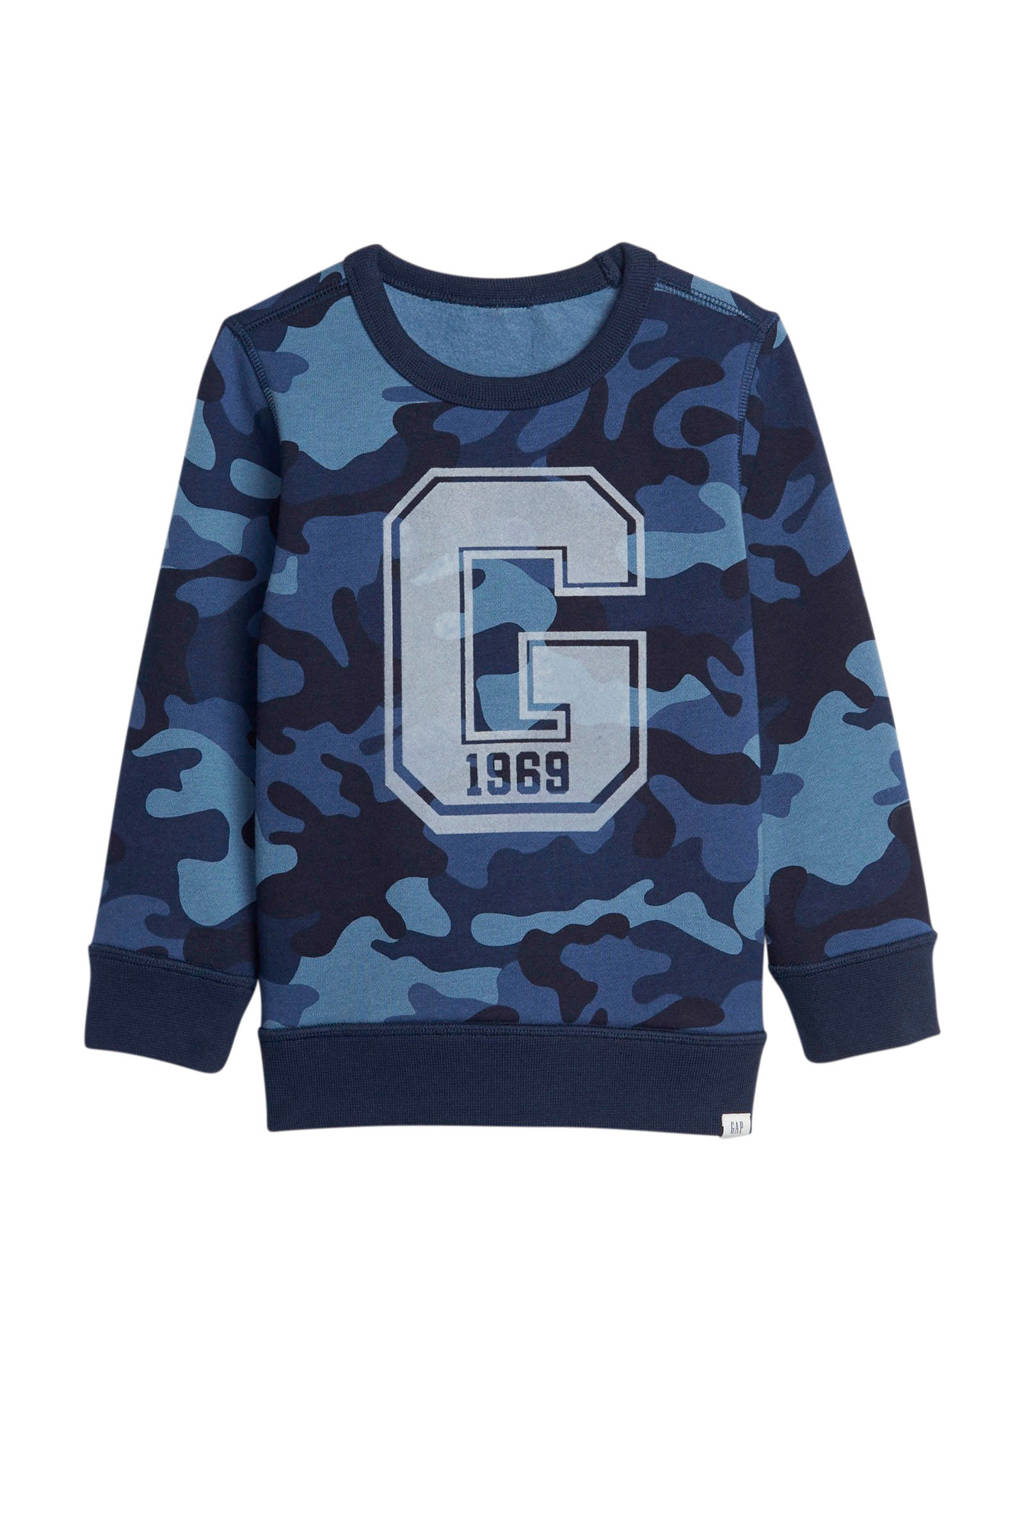 GAP sweater met camouflageprint blauw, Blauw